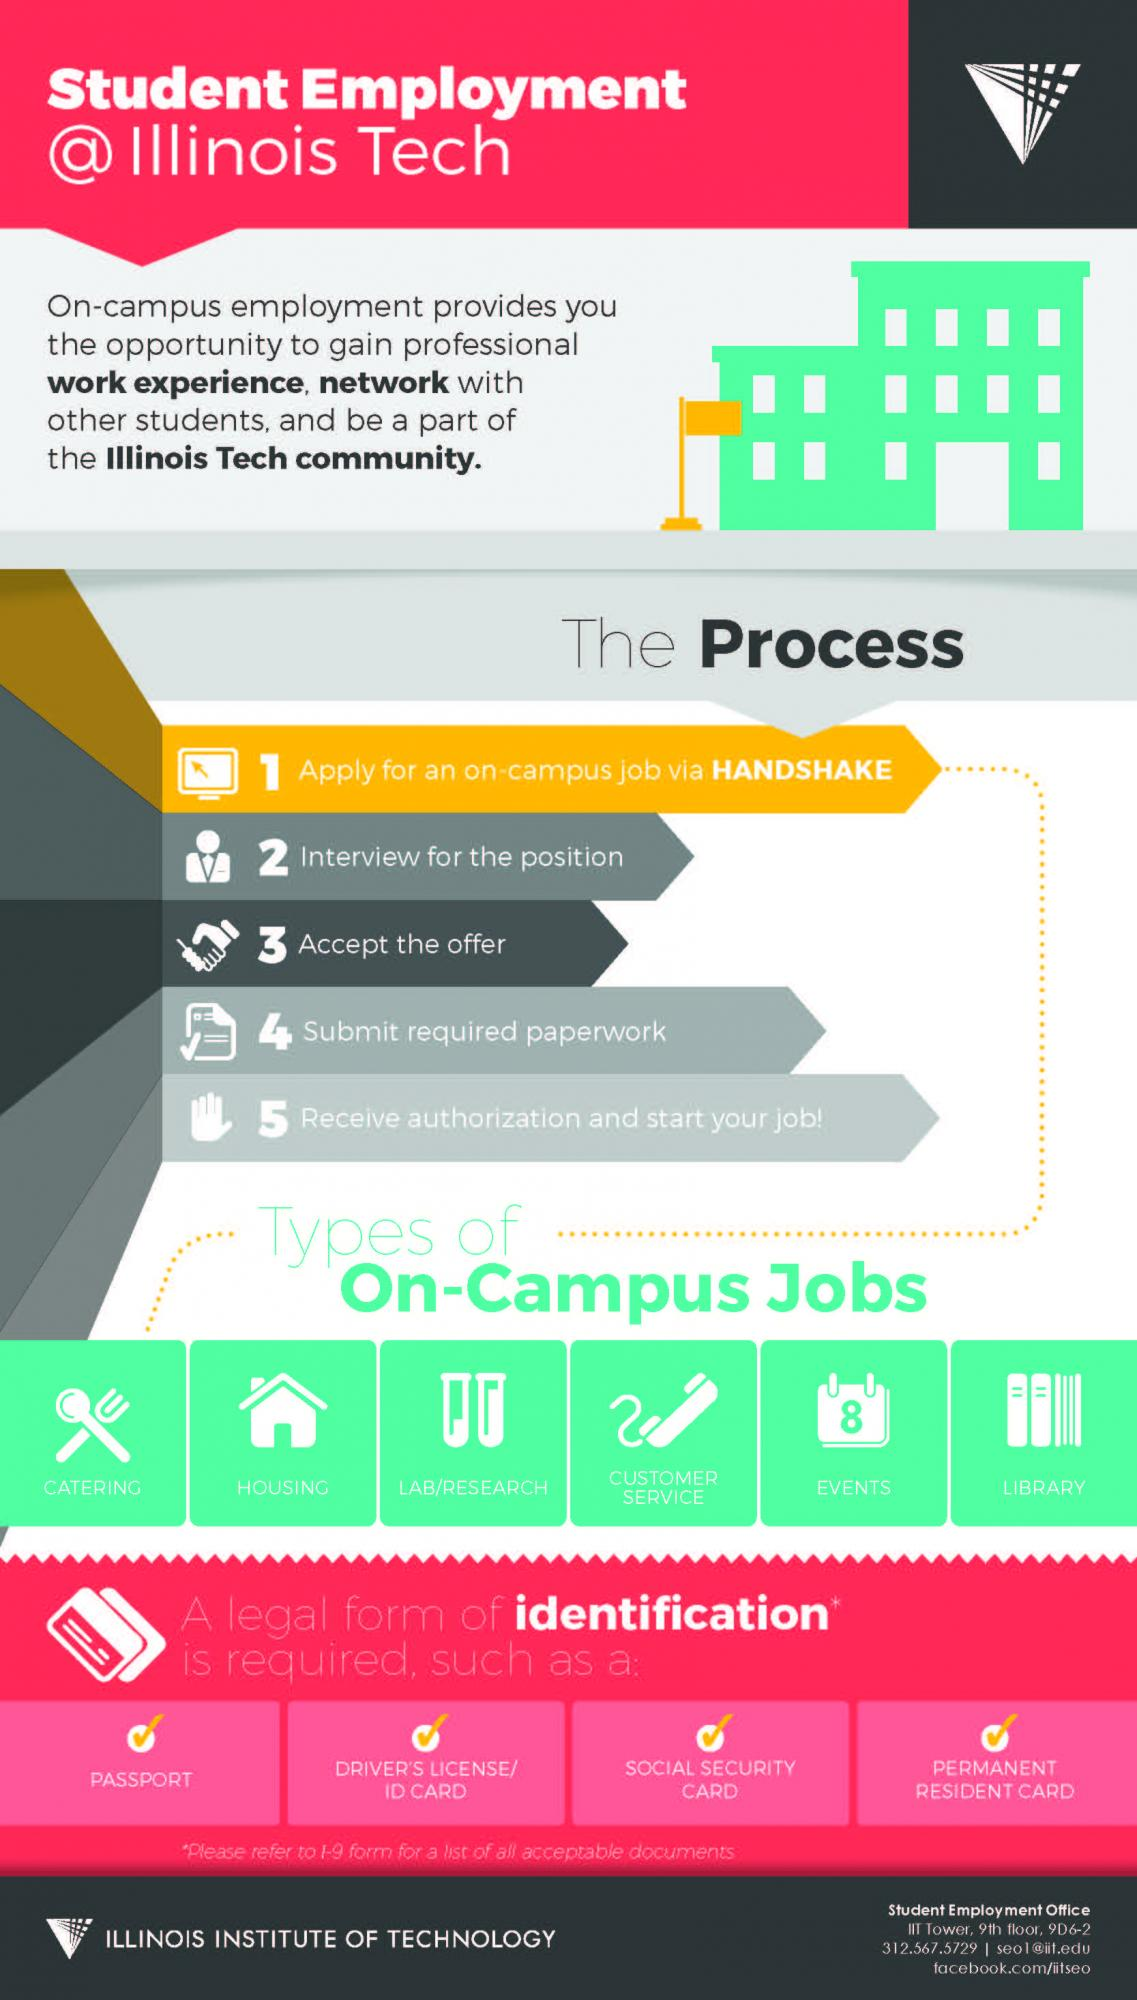 Student Employment @ Illinois Tech Infographic